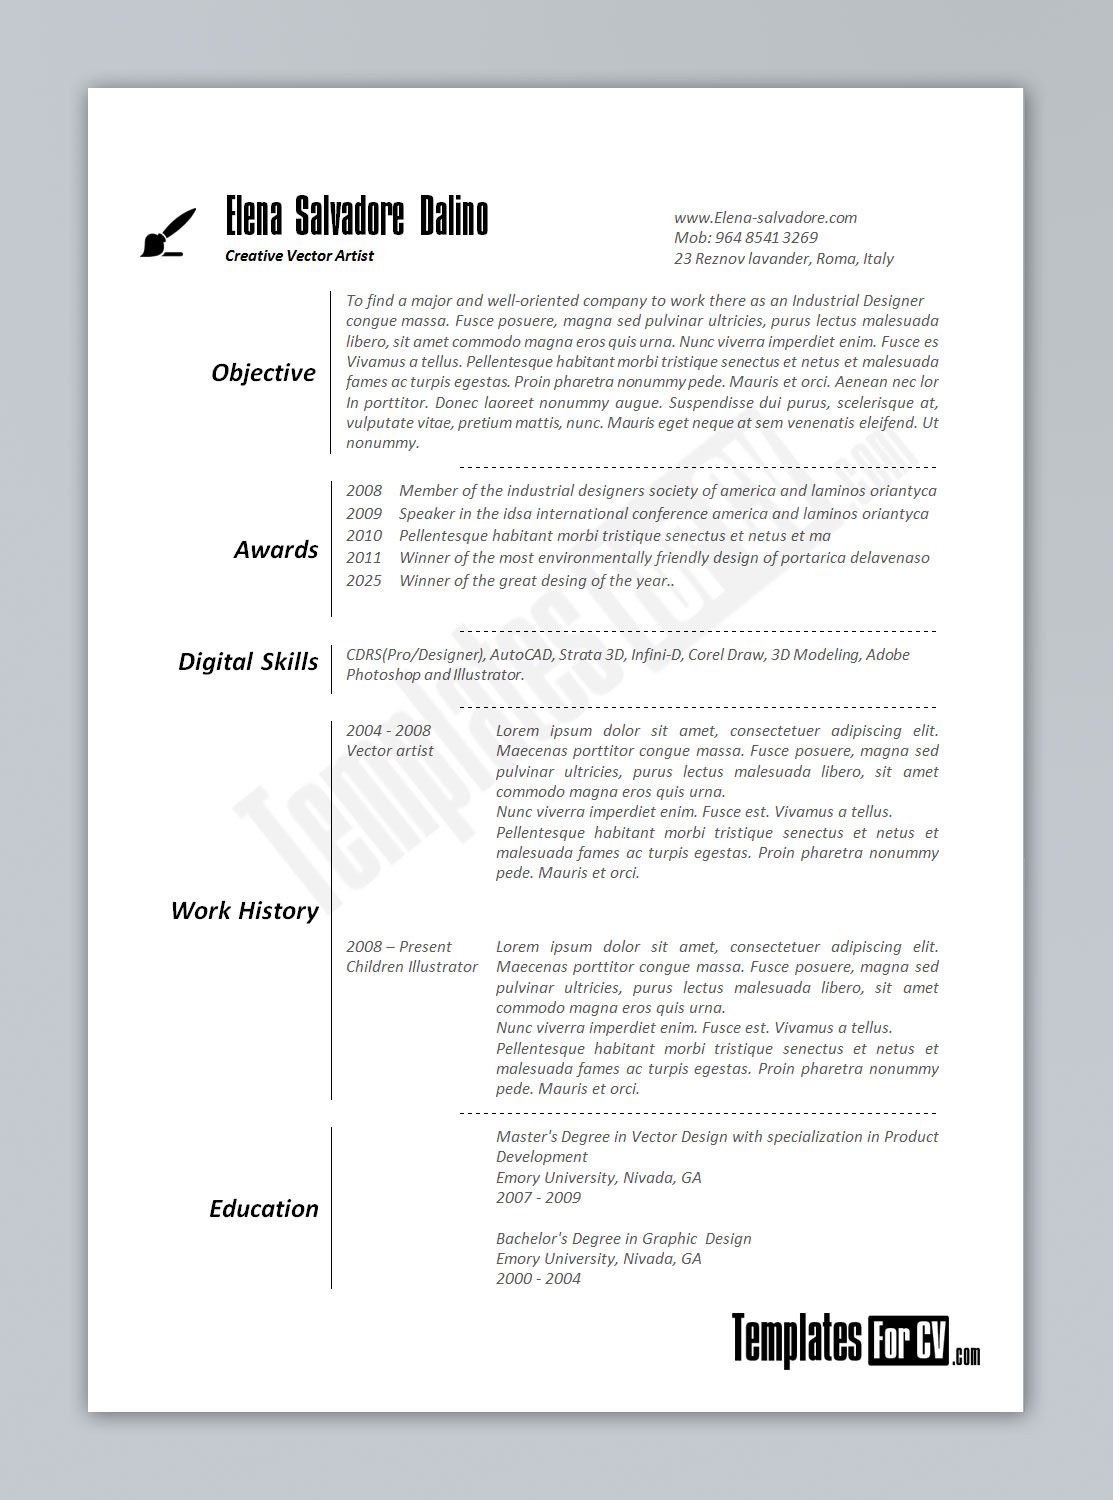 resume templates for business best online resume builder resume templates for business resume templates microsoft word templates resume template resume word format